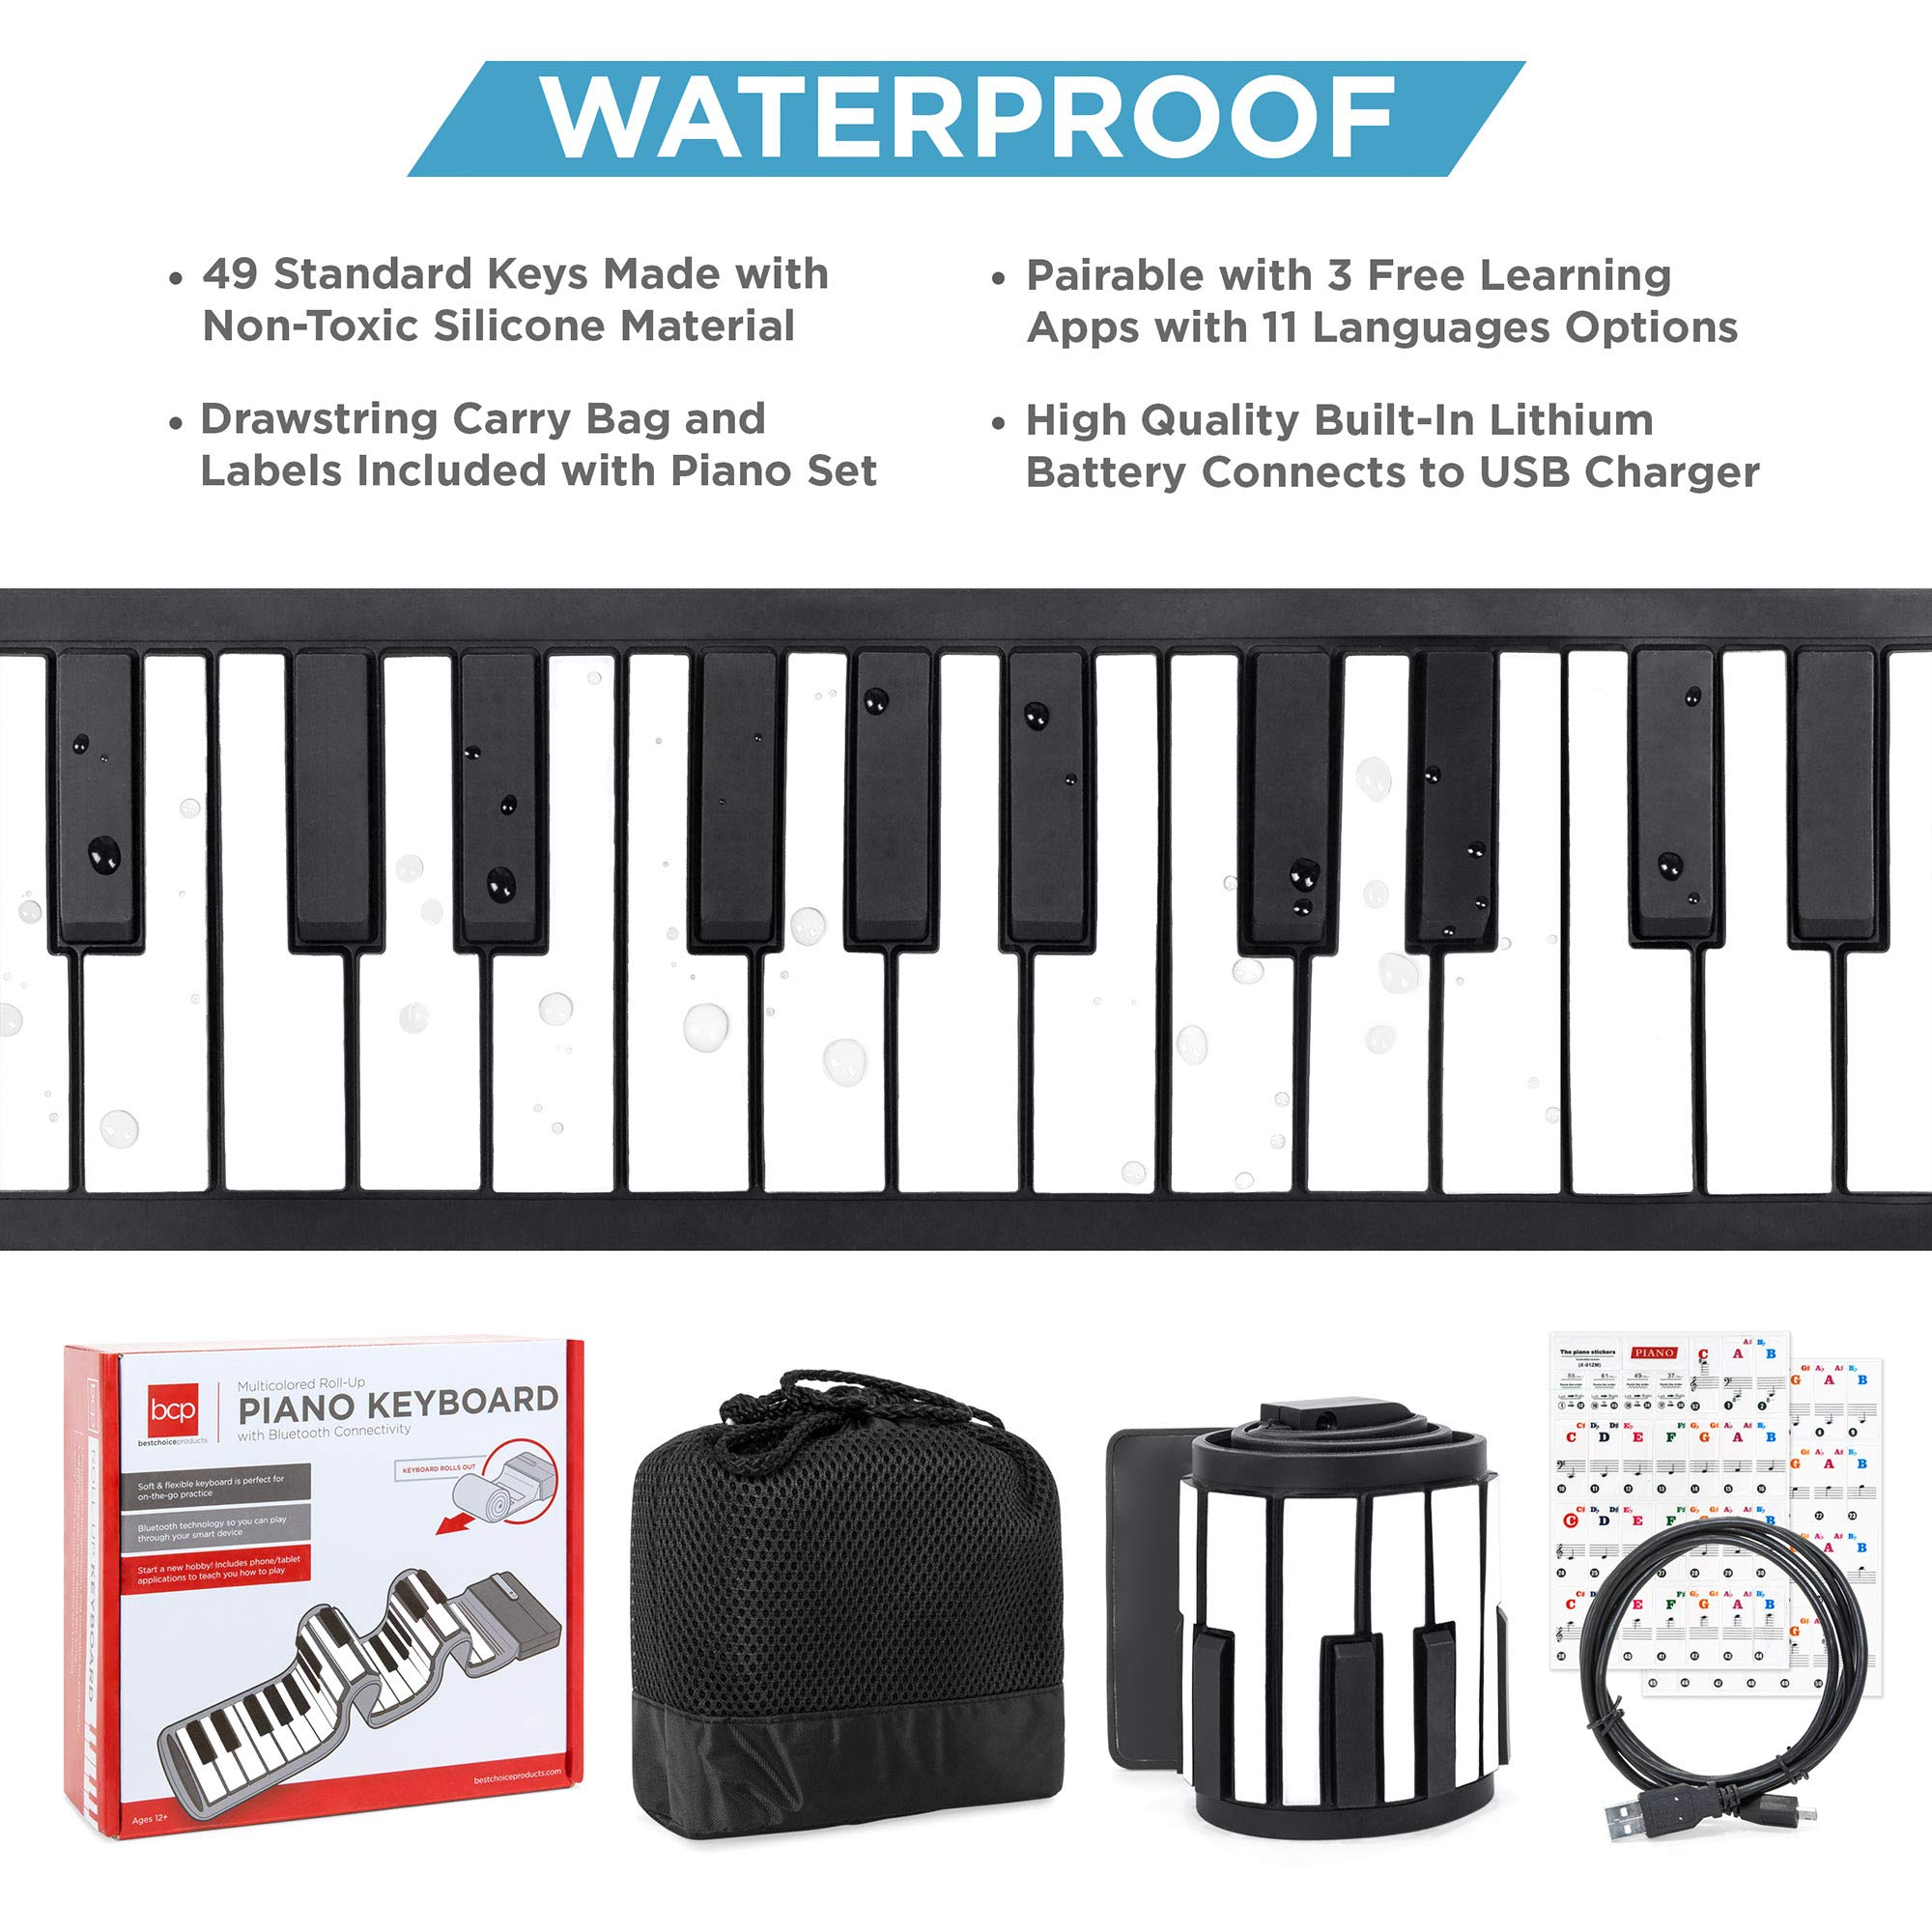 Best Choice Products Kids 49-Key Portable Flexible Roll-Up Piano Keyboard Musical Educational Toy Instrument w/Learn-To-Play App Game, Bluetooth Phone Pairing, Note Labels, USB Charging - White by Best Choice Products (Image #2)